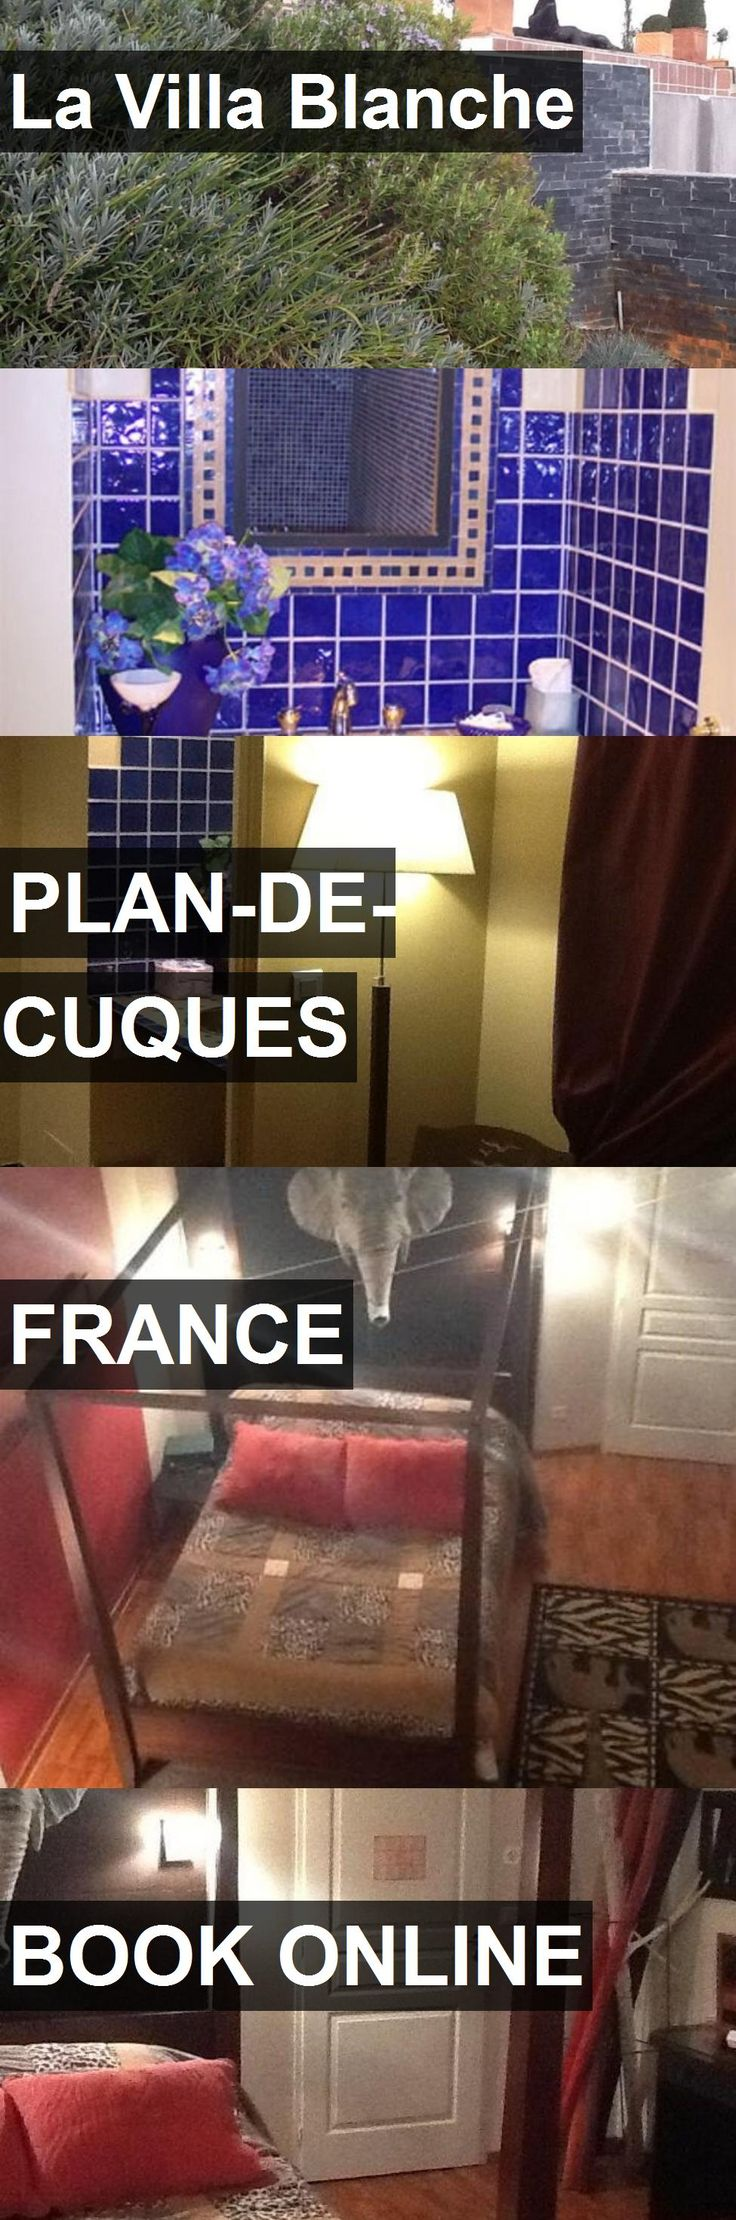 Hotel La Villa Blanche in Plan-de-Cuques, France. For more information, photos, reviews and best prices please follow the link. #France #Plan-de-Cuques #LaVillaBlanche #hotel #travel #vacation